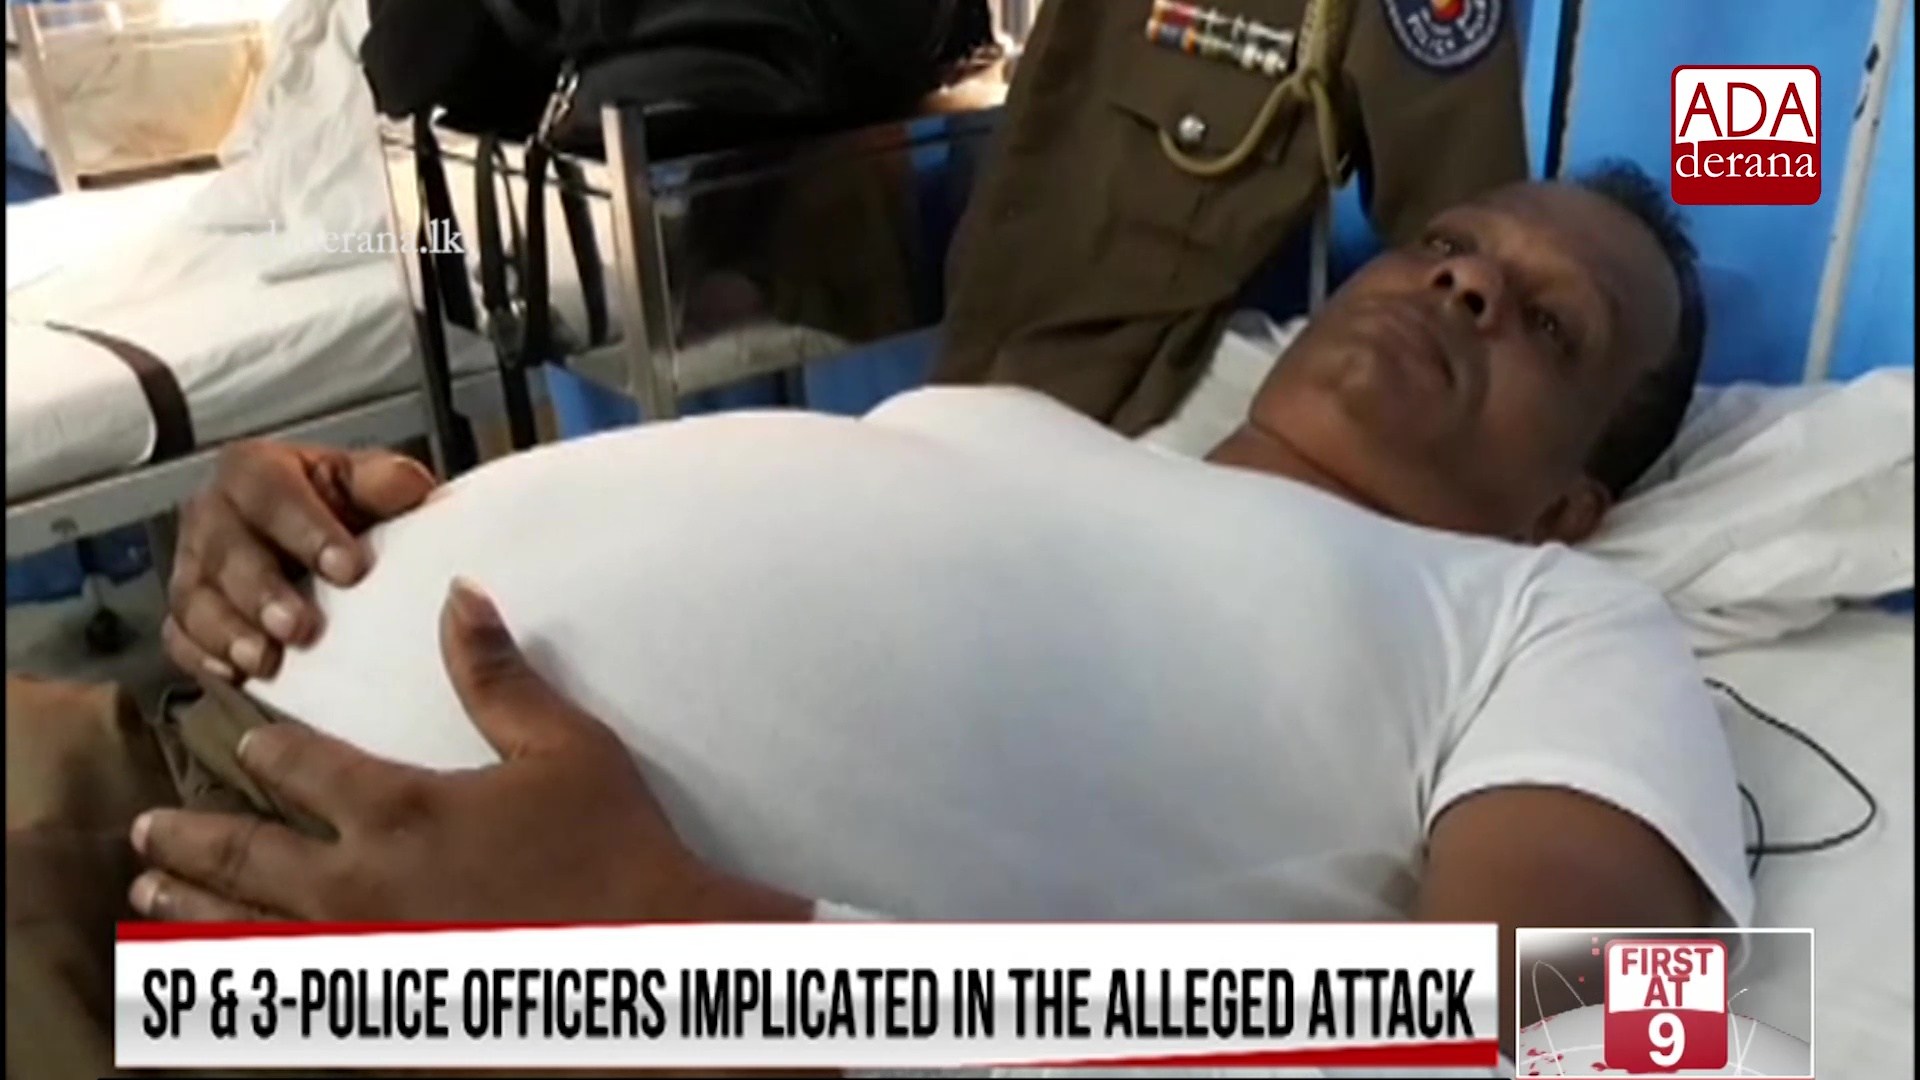 OIC of 119 Emergency Service assaulted by high-ranking police officer (English)